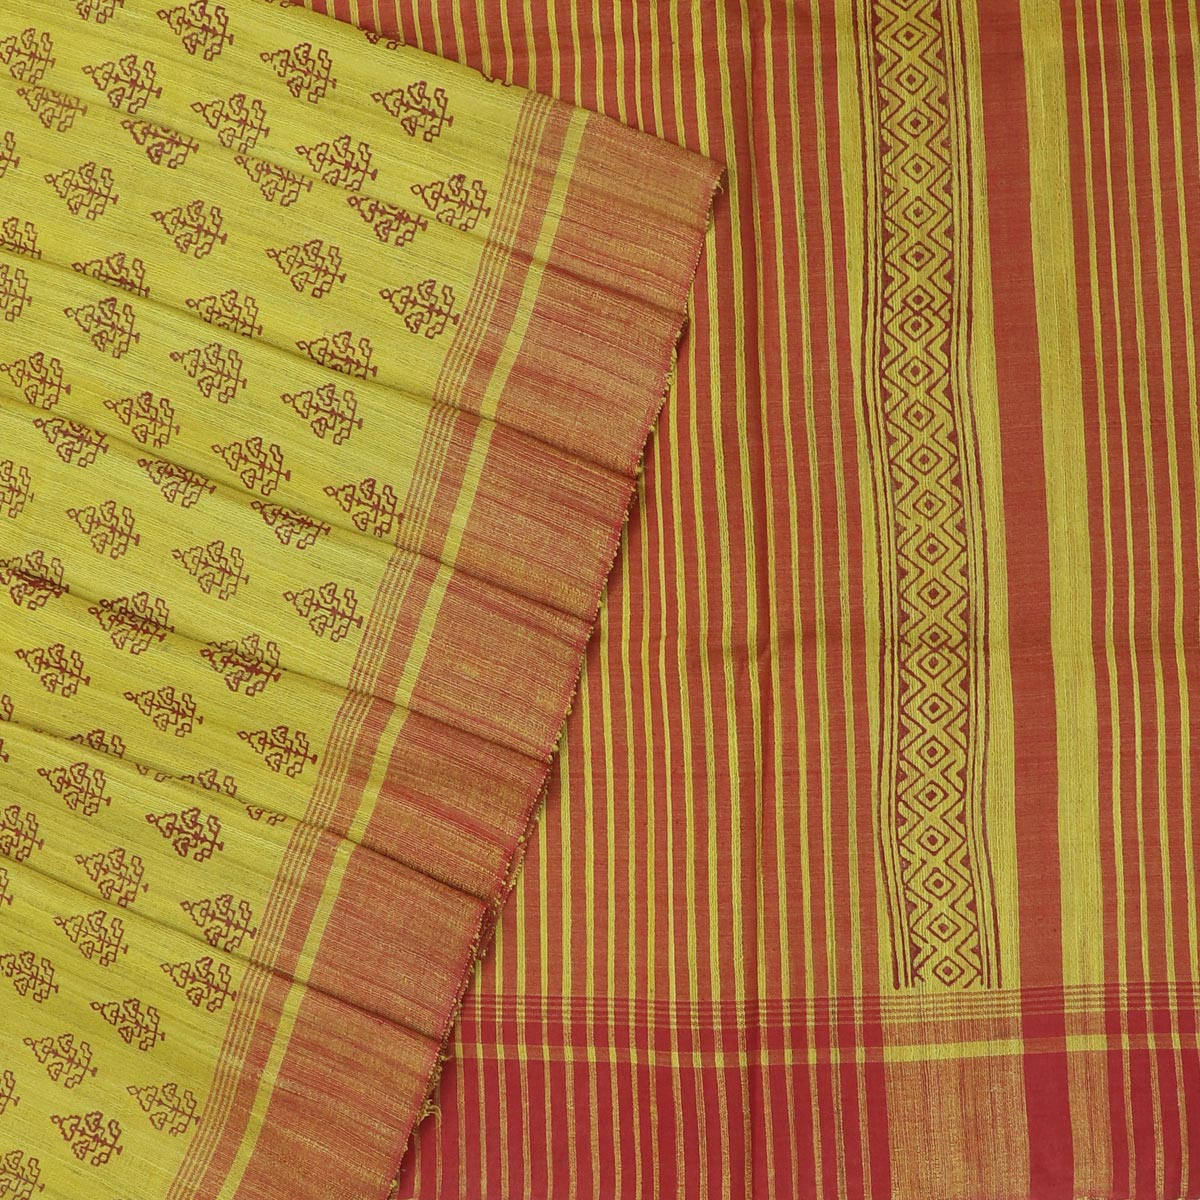 Pure raw silk Saree -Yellow and Red with Block Print and simple border